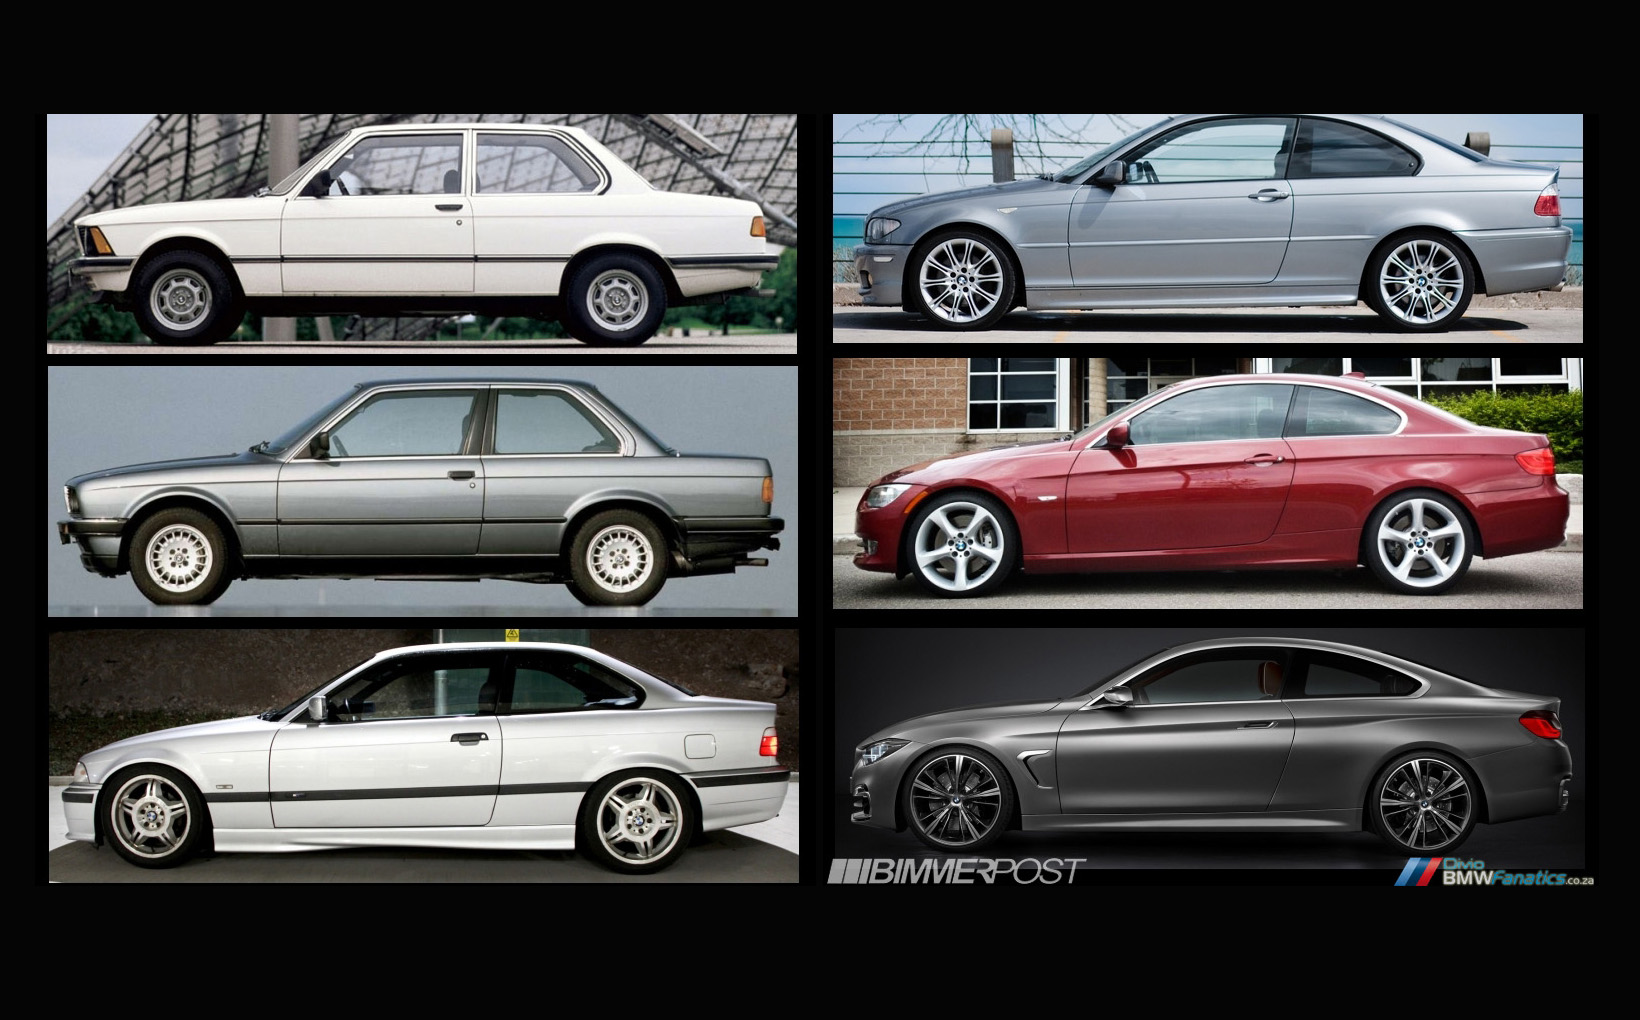 Evolution Of The Bmw 3 Series Coupe To 4 Series Coupe E21 To F32